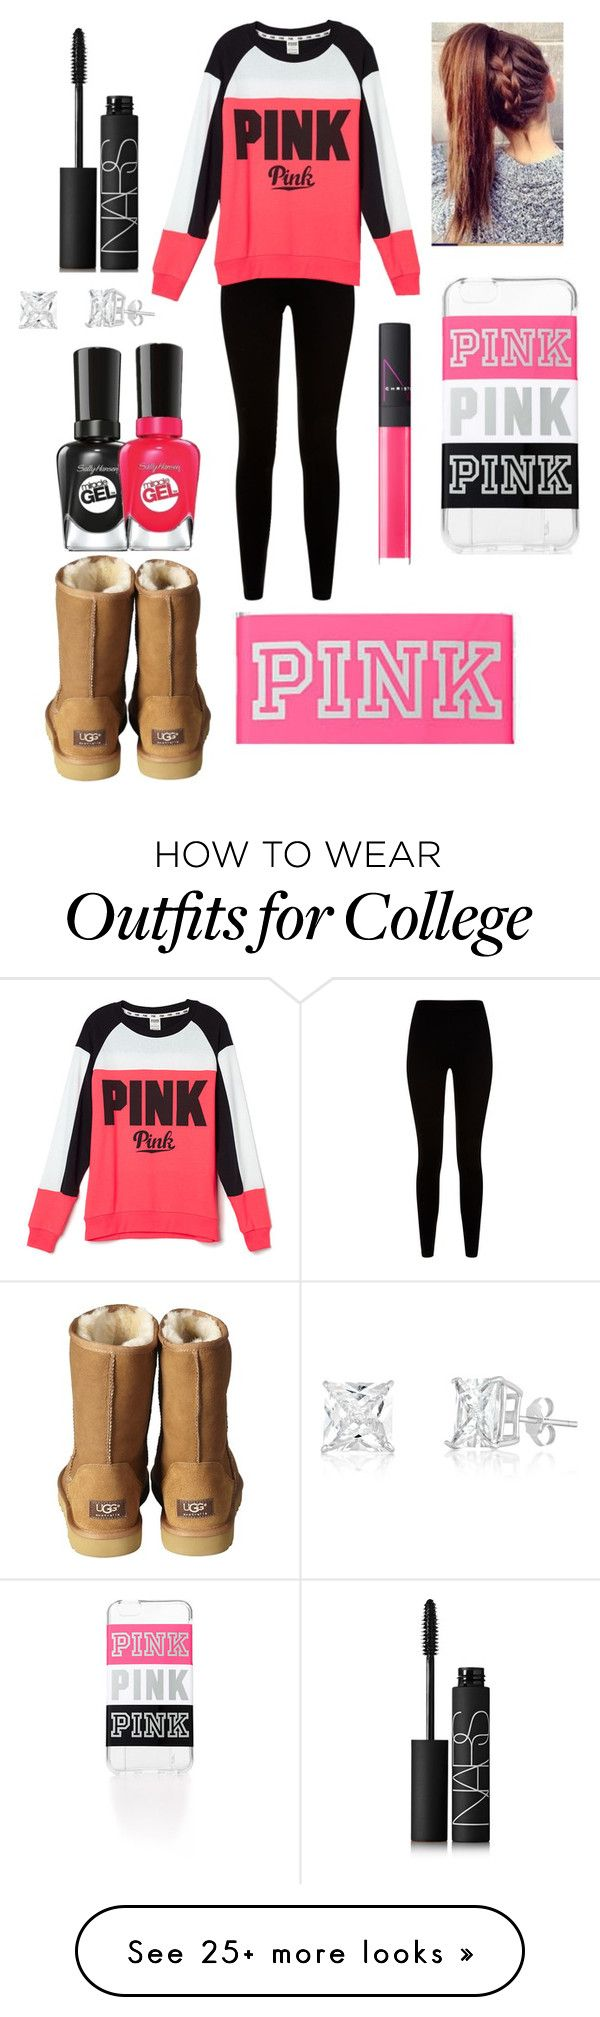 """PINK"" by aldowney3 on Polyvore featuring Givenchy, Victoria's Secret, UGG Australia, NARS Cosmetics and Sally Hansen"